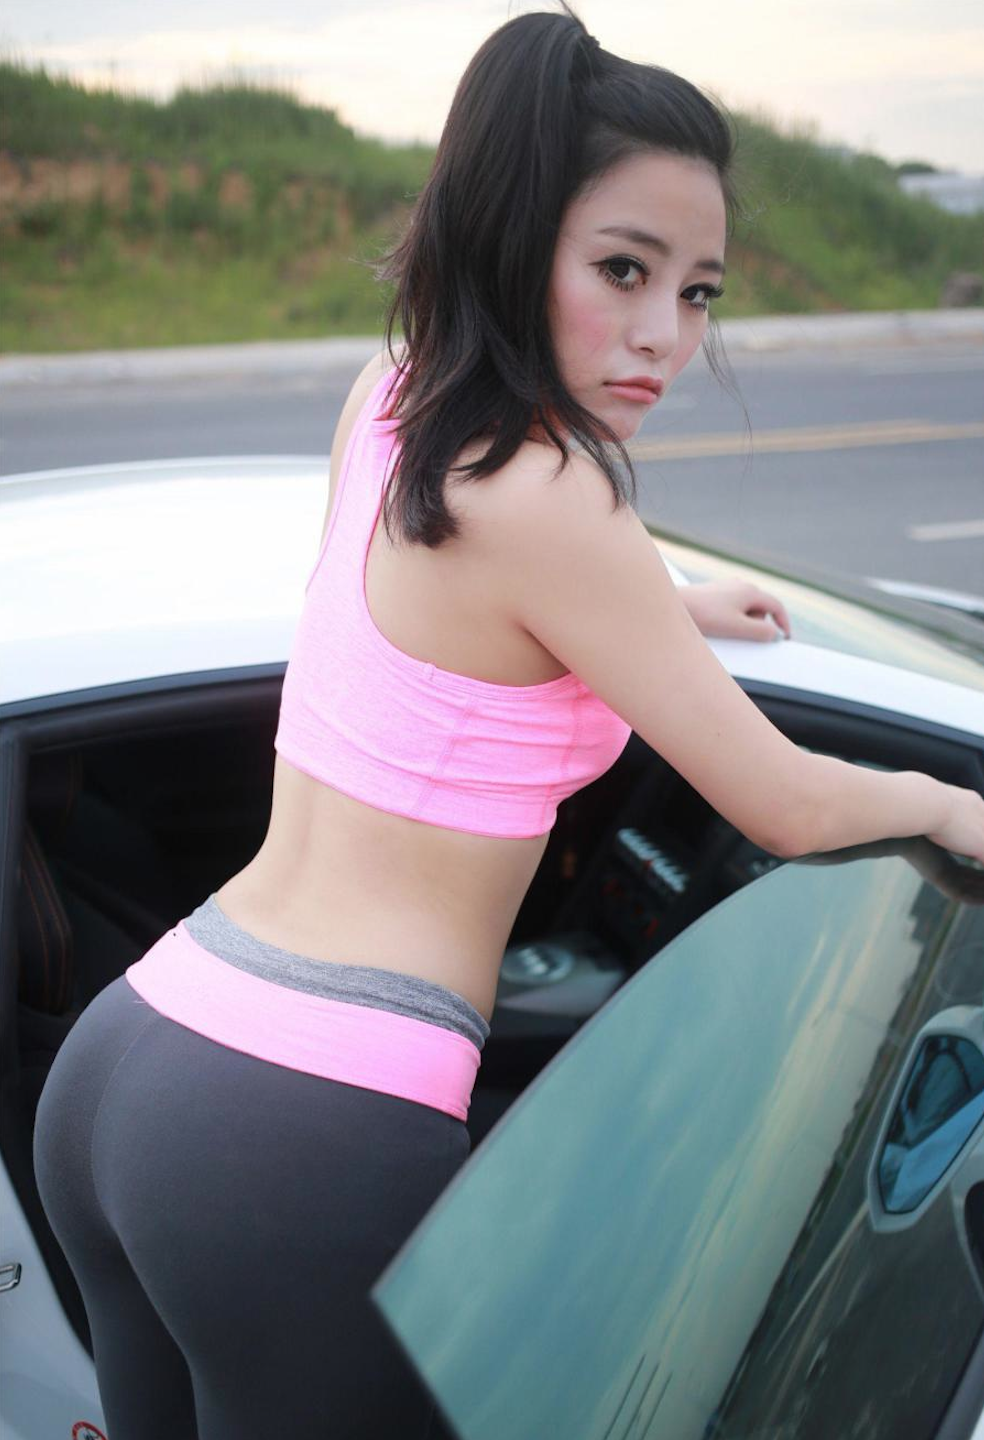 Asians in yoga pants